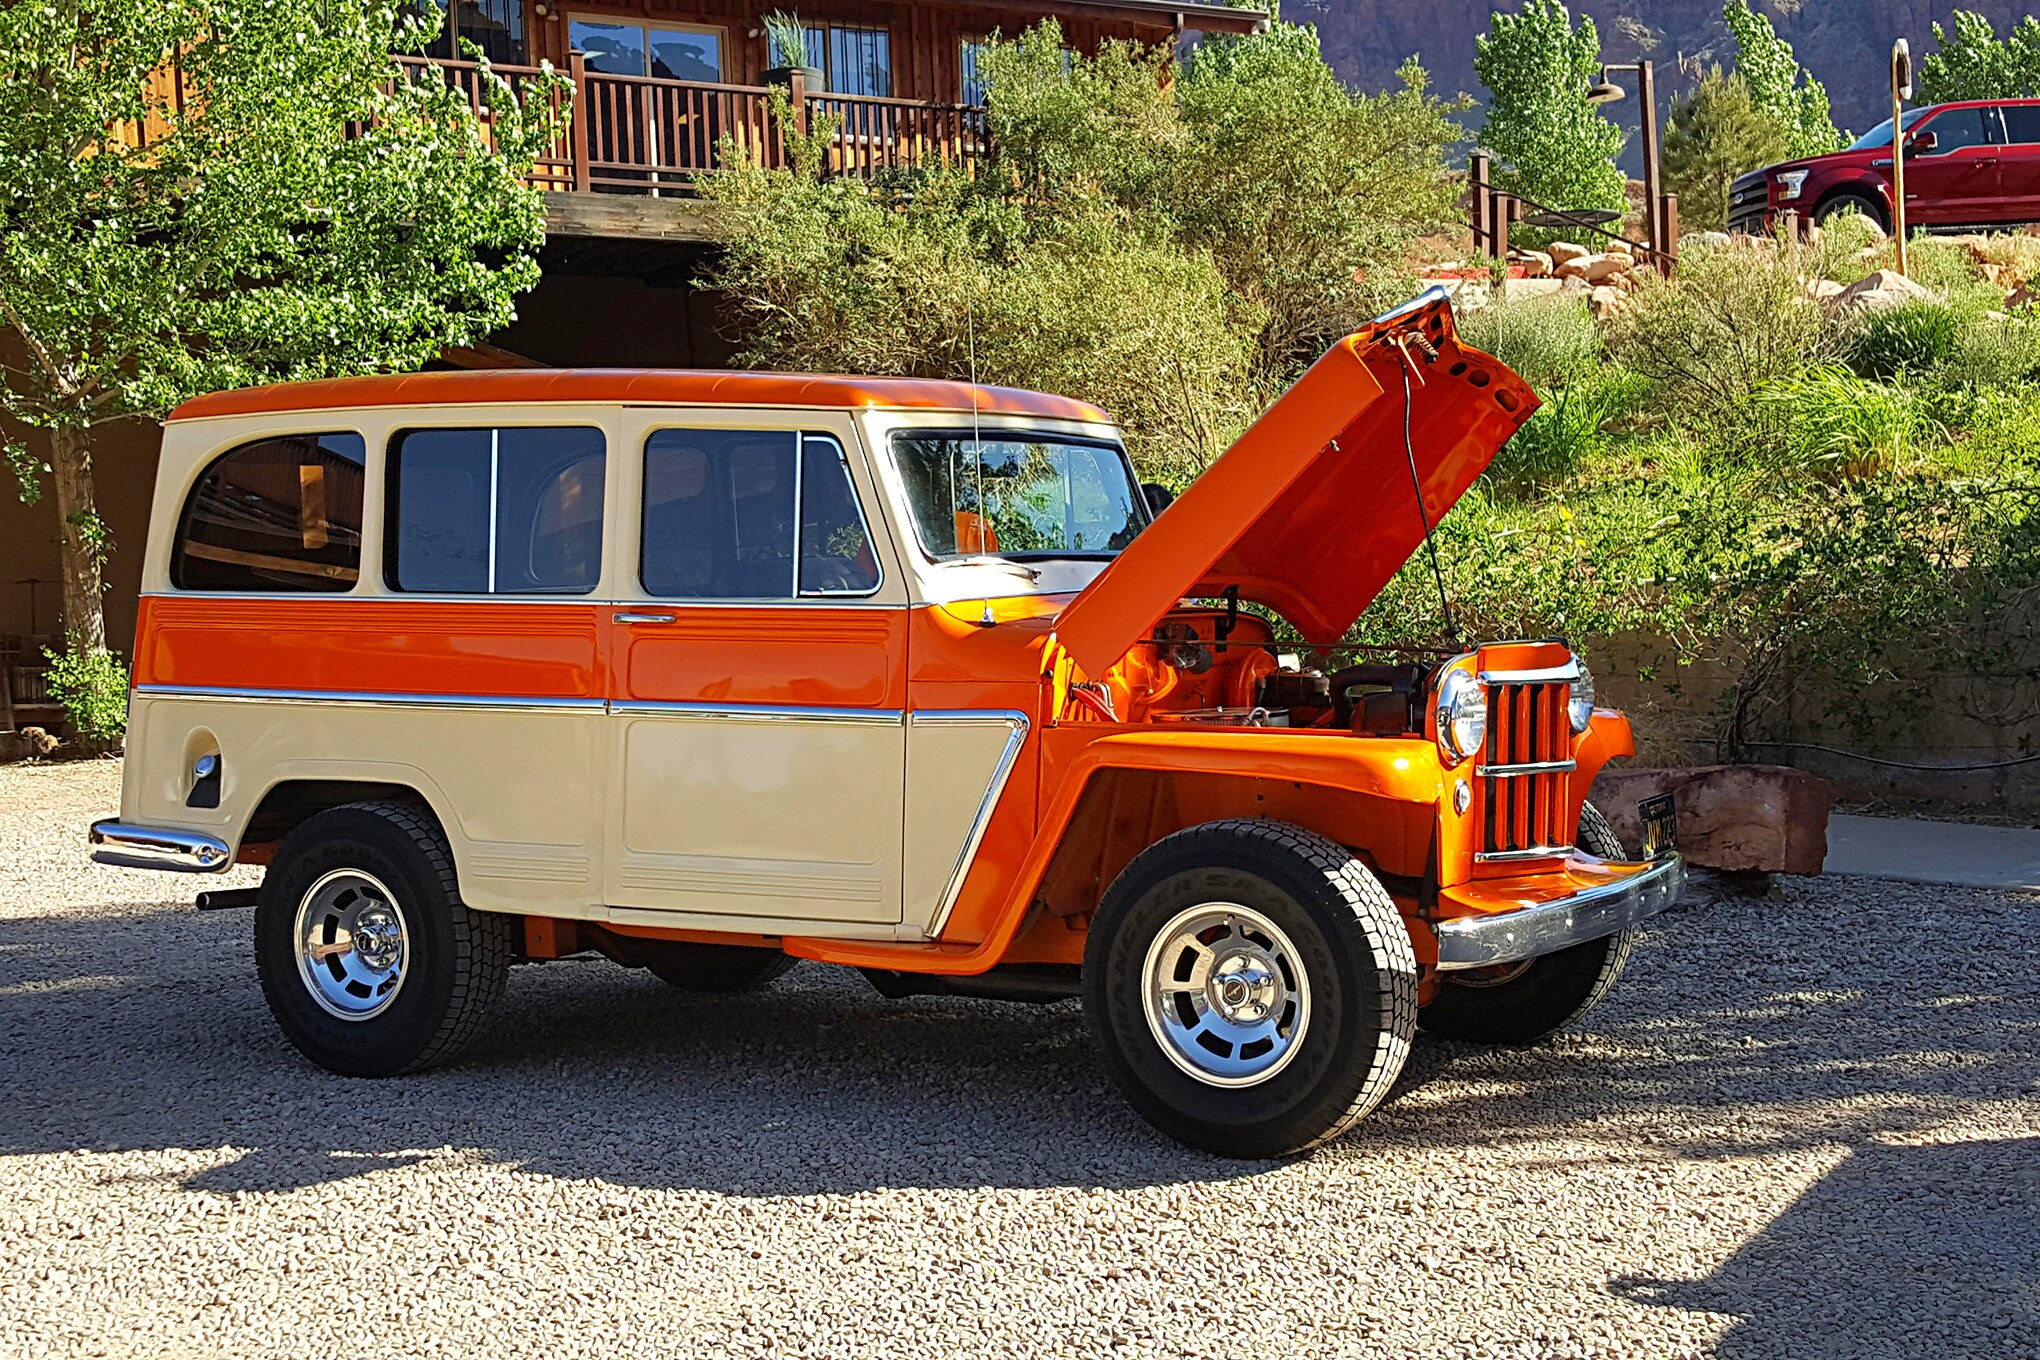 Art Holling drove his 1960 Willys Wagon all the way from Corona, California, to attend his first Willys Rally. This beautiful wagon sports front and rear suspension from a 1978 Corvette, a 350 Chevrolet V-8 engine, and a 700R4 automatic transmission. Art has four wagons in his current collection.